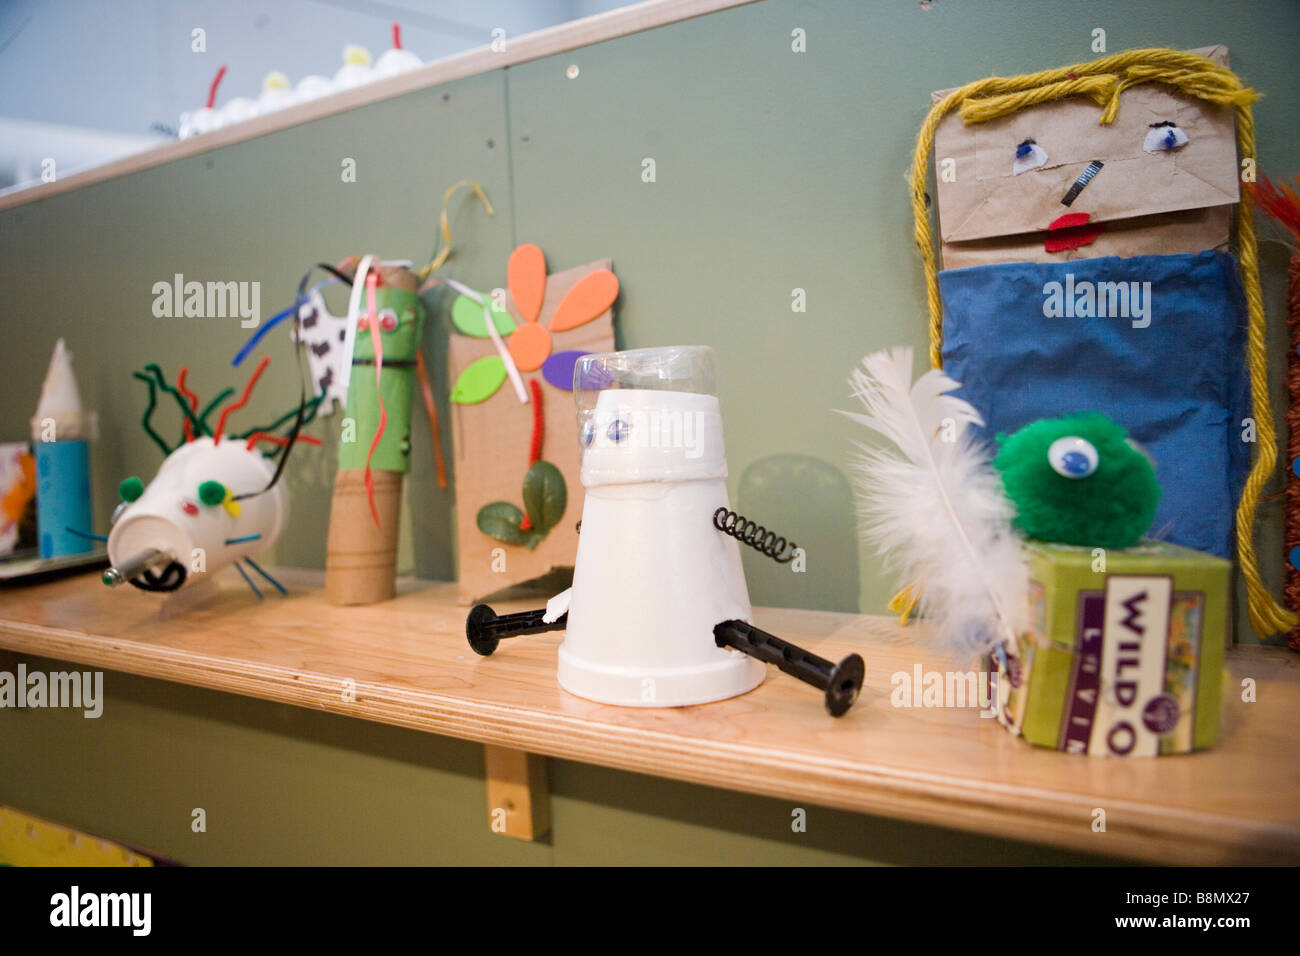 bag puppets, dolls, and toys made of simple recycled materials - Stock Image